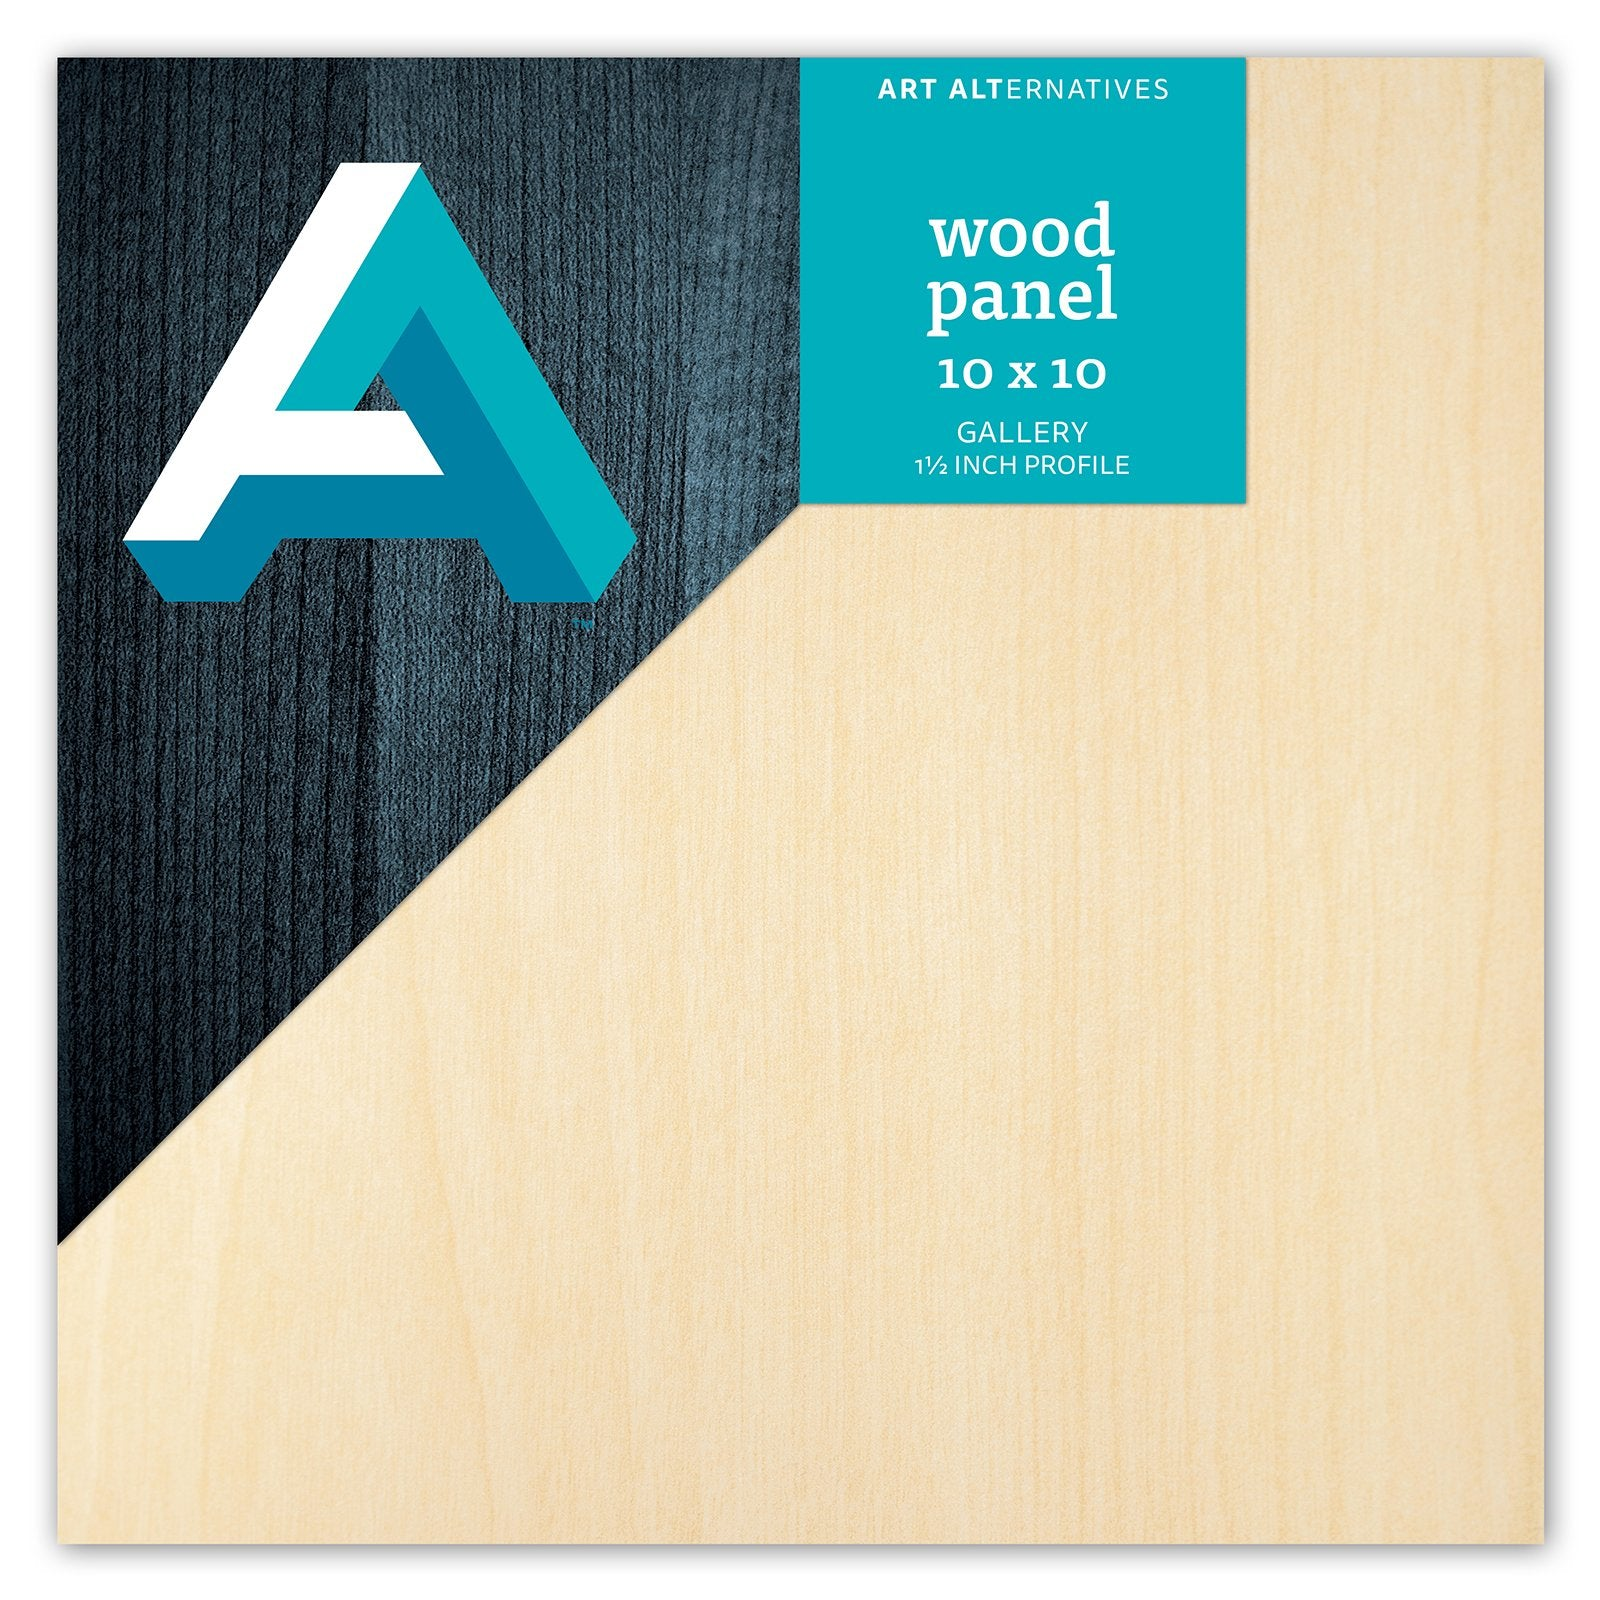 "Art Alternatives Classic Wood Panel, Gallery, 1.5"" Profile, 10"" x 10"""